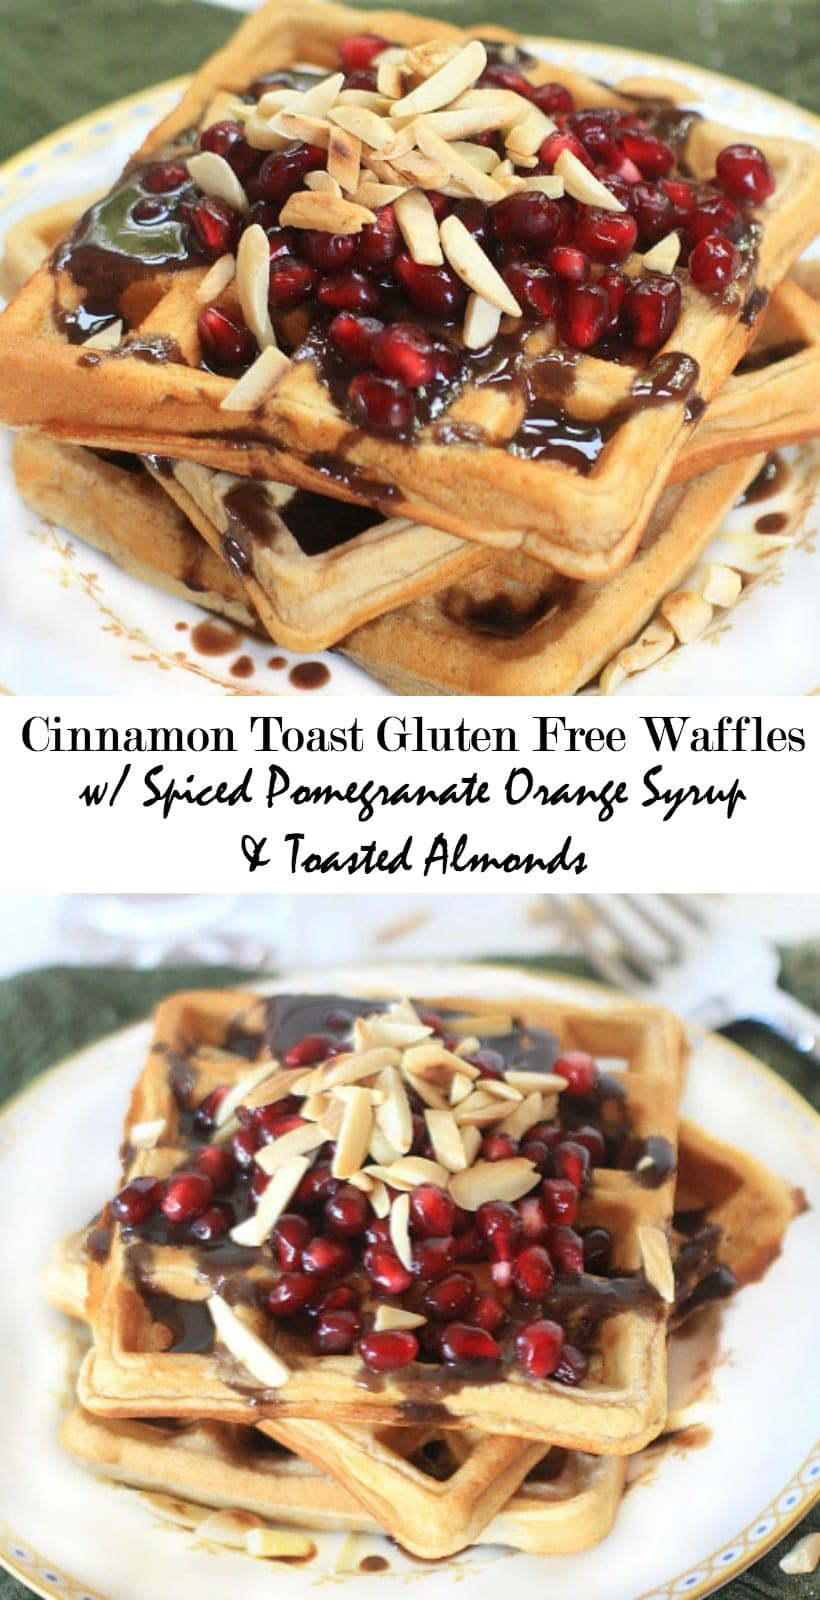 Dig in! Cinnamon Toast Gluten Free Waffles with Pomegranate Orange Syrup